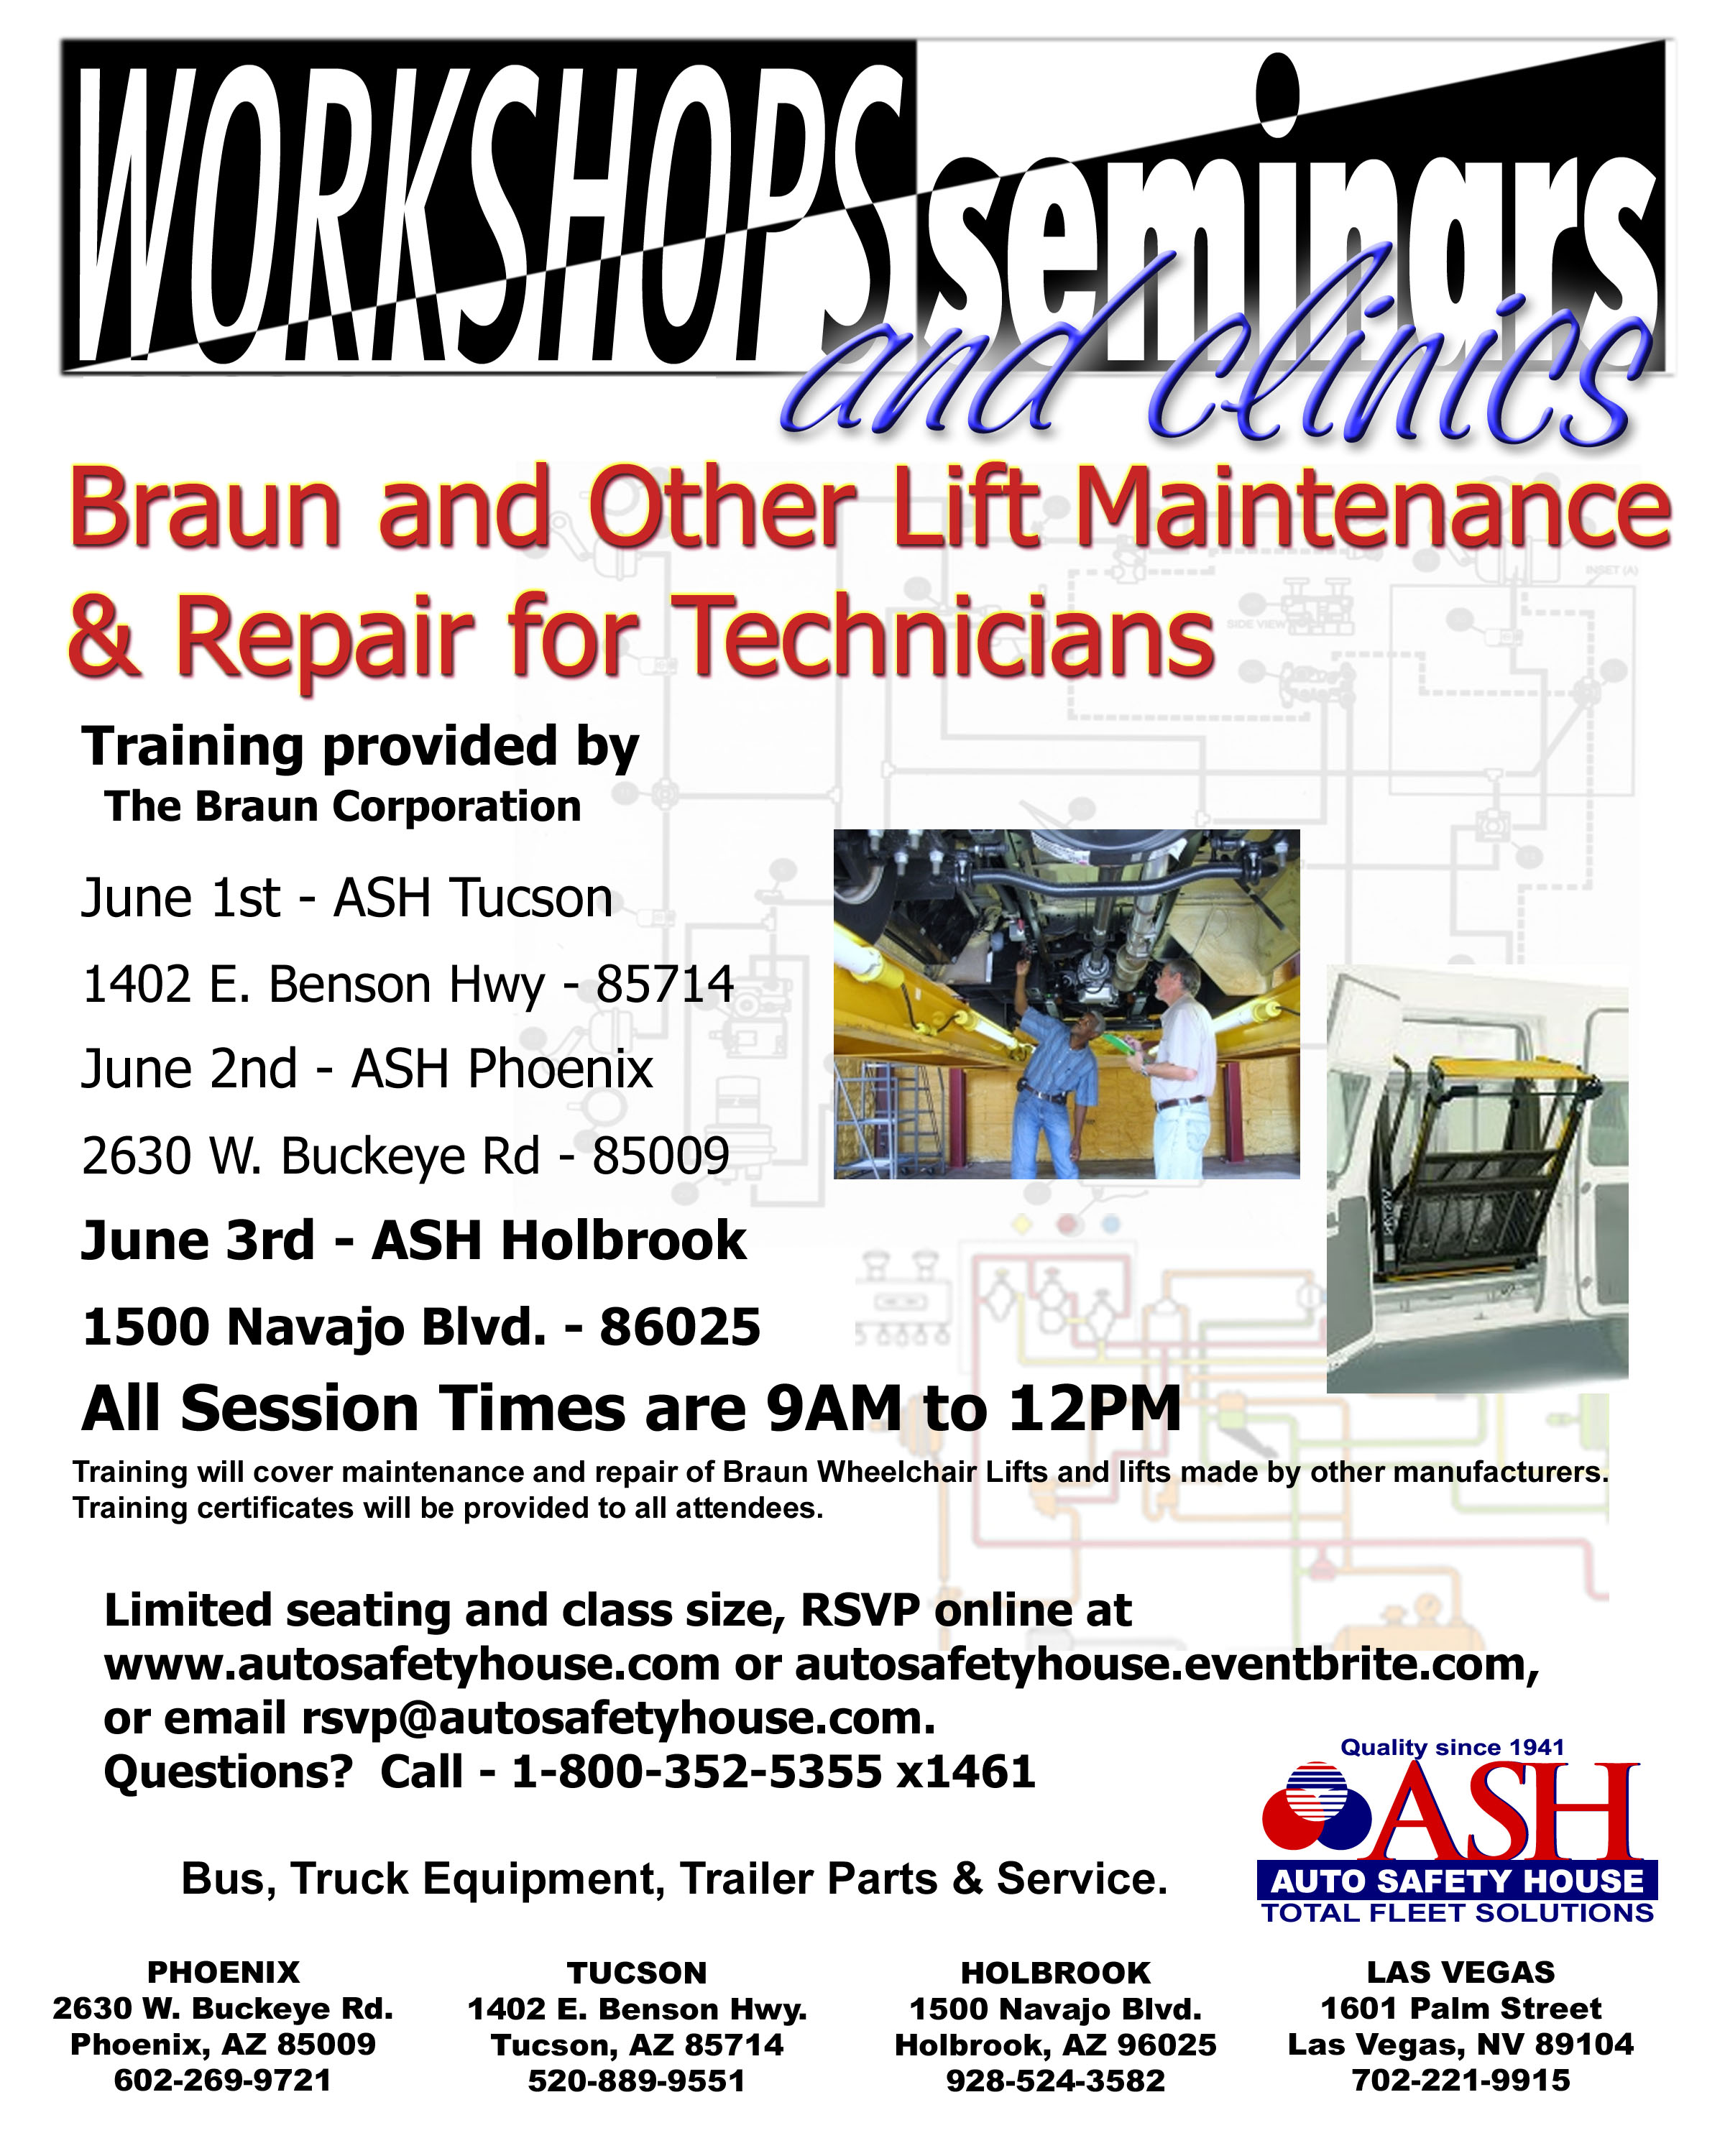 Braun and Other Lift Maintenance and Repair Workshop Flyer